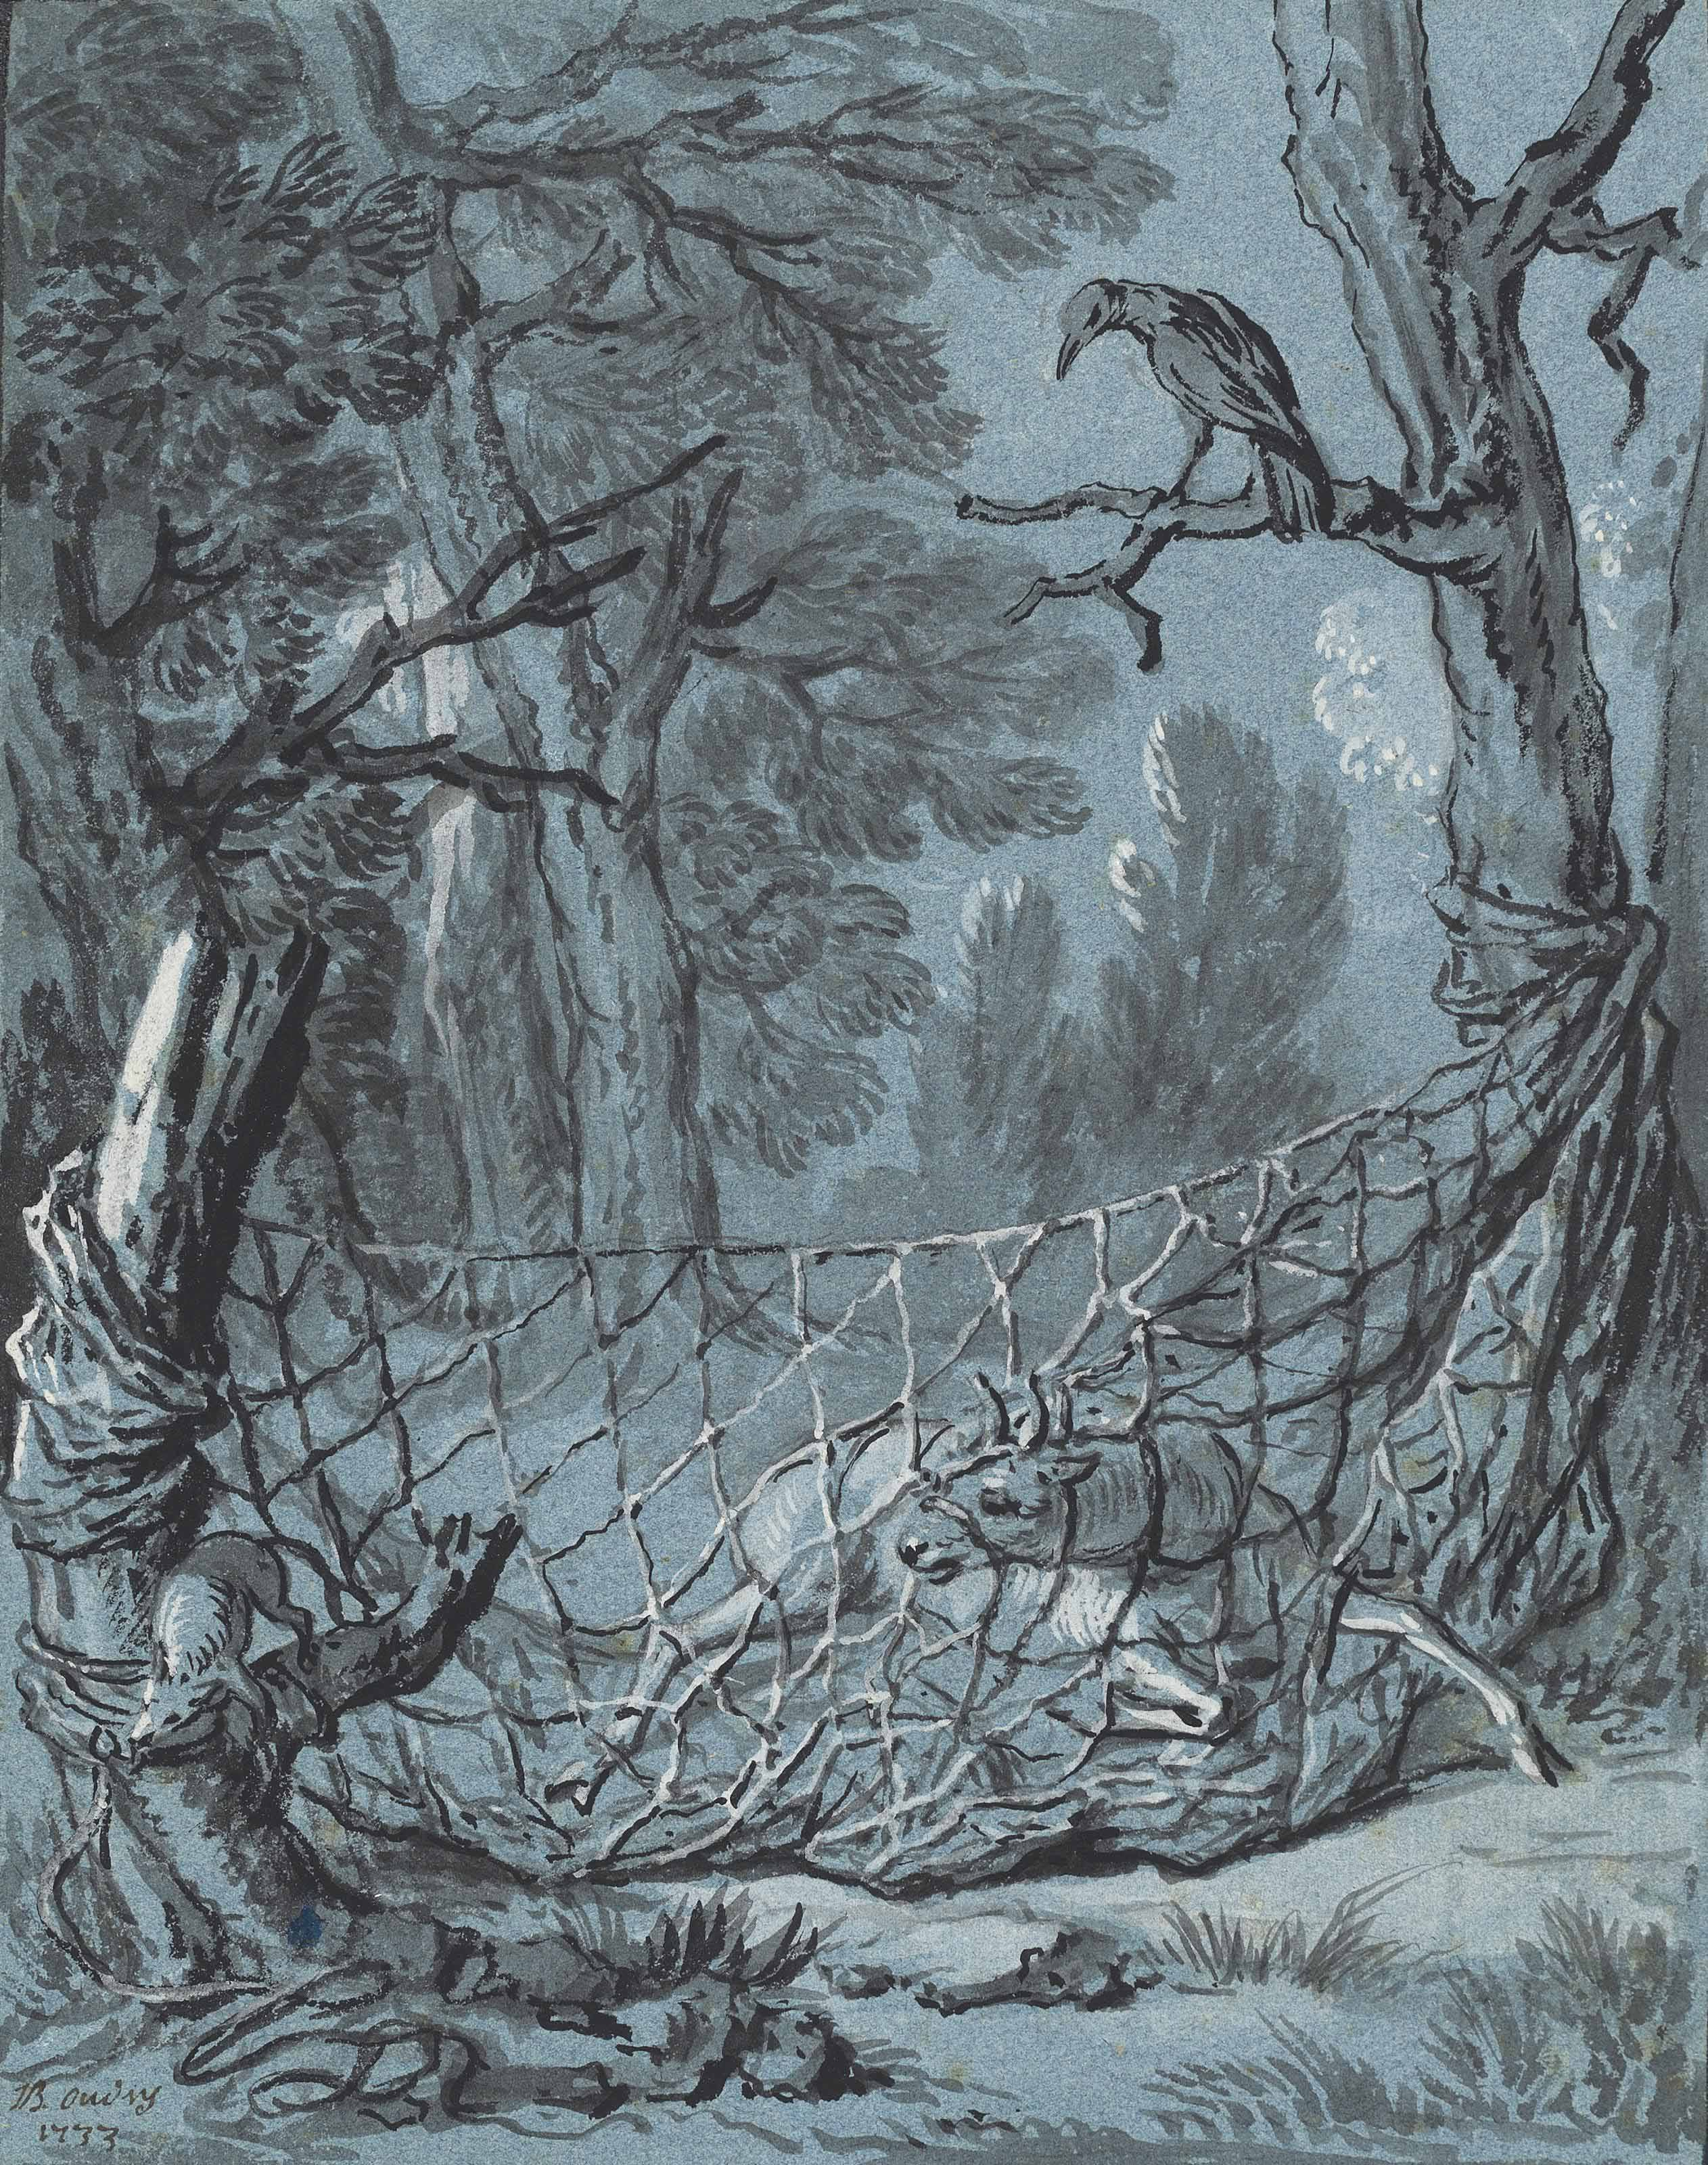 Illustration of a fable by Jean de La Fontaine: The crow, the gazelle, the tortoise and the rat